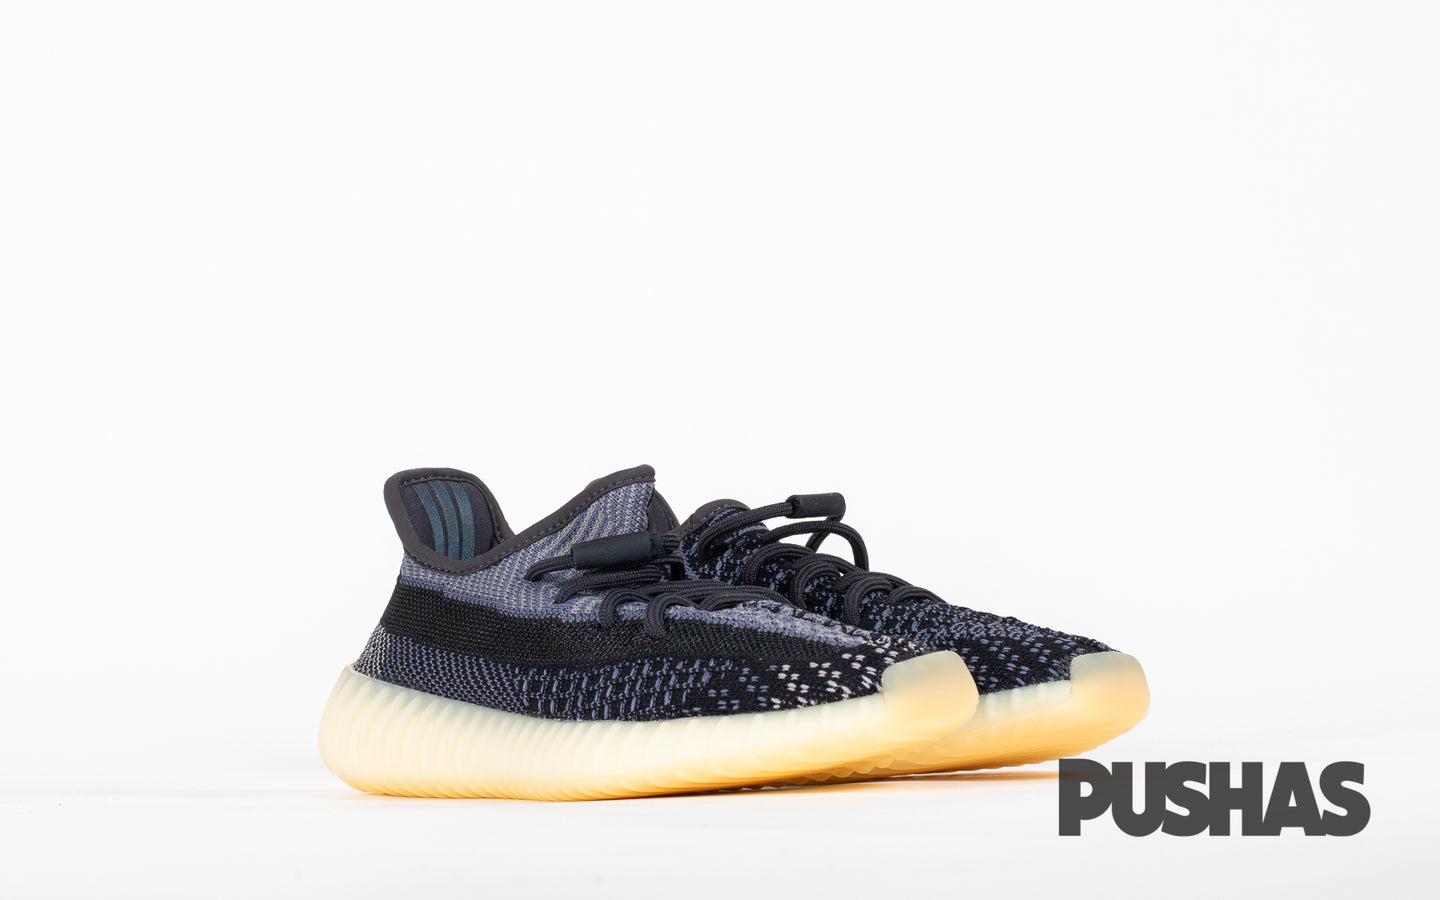 pushas-adidas-Yeezy-Boost-350-V2-Carbon